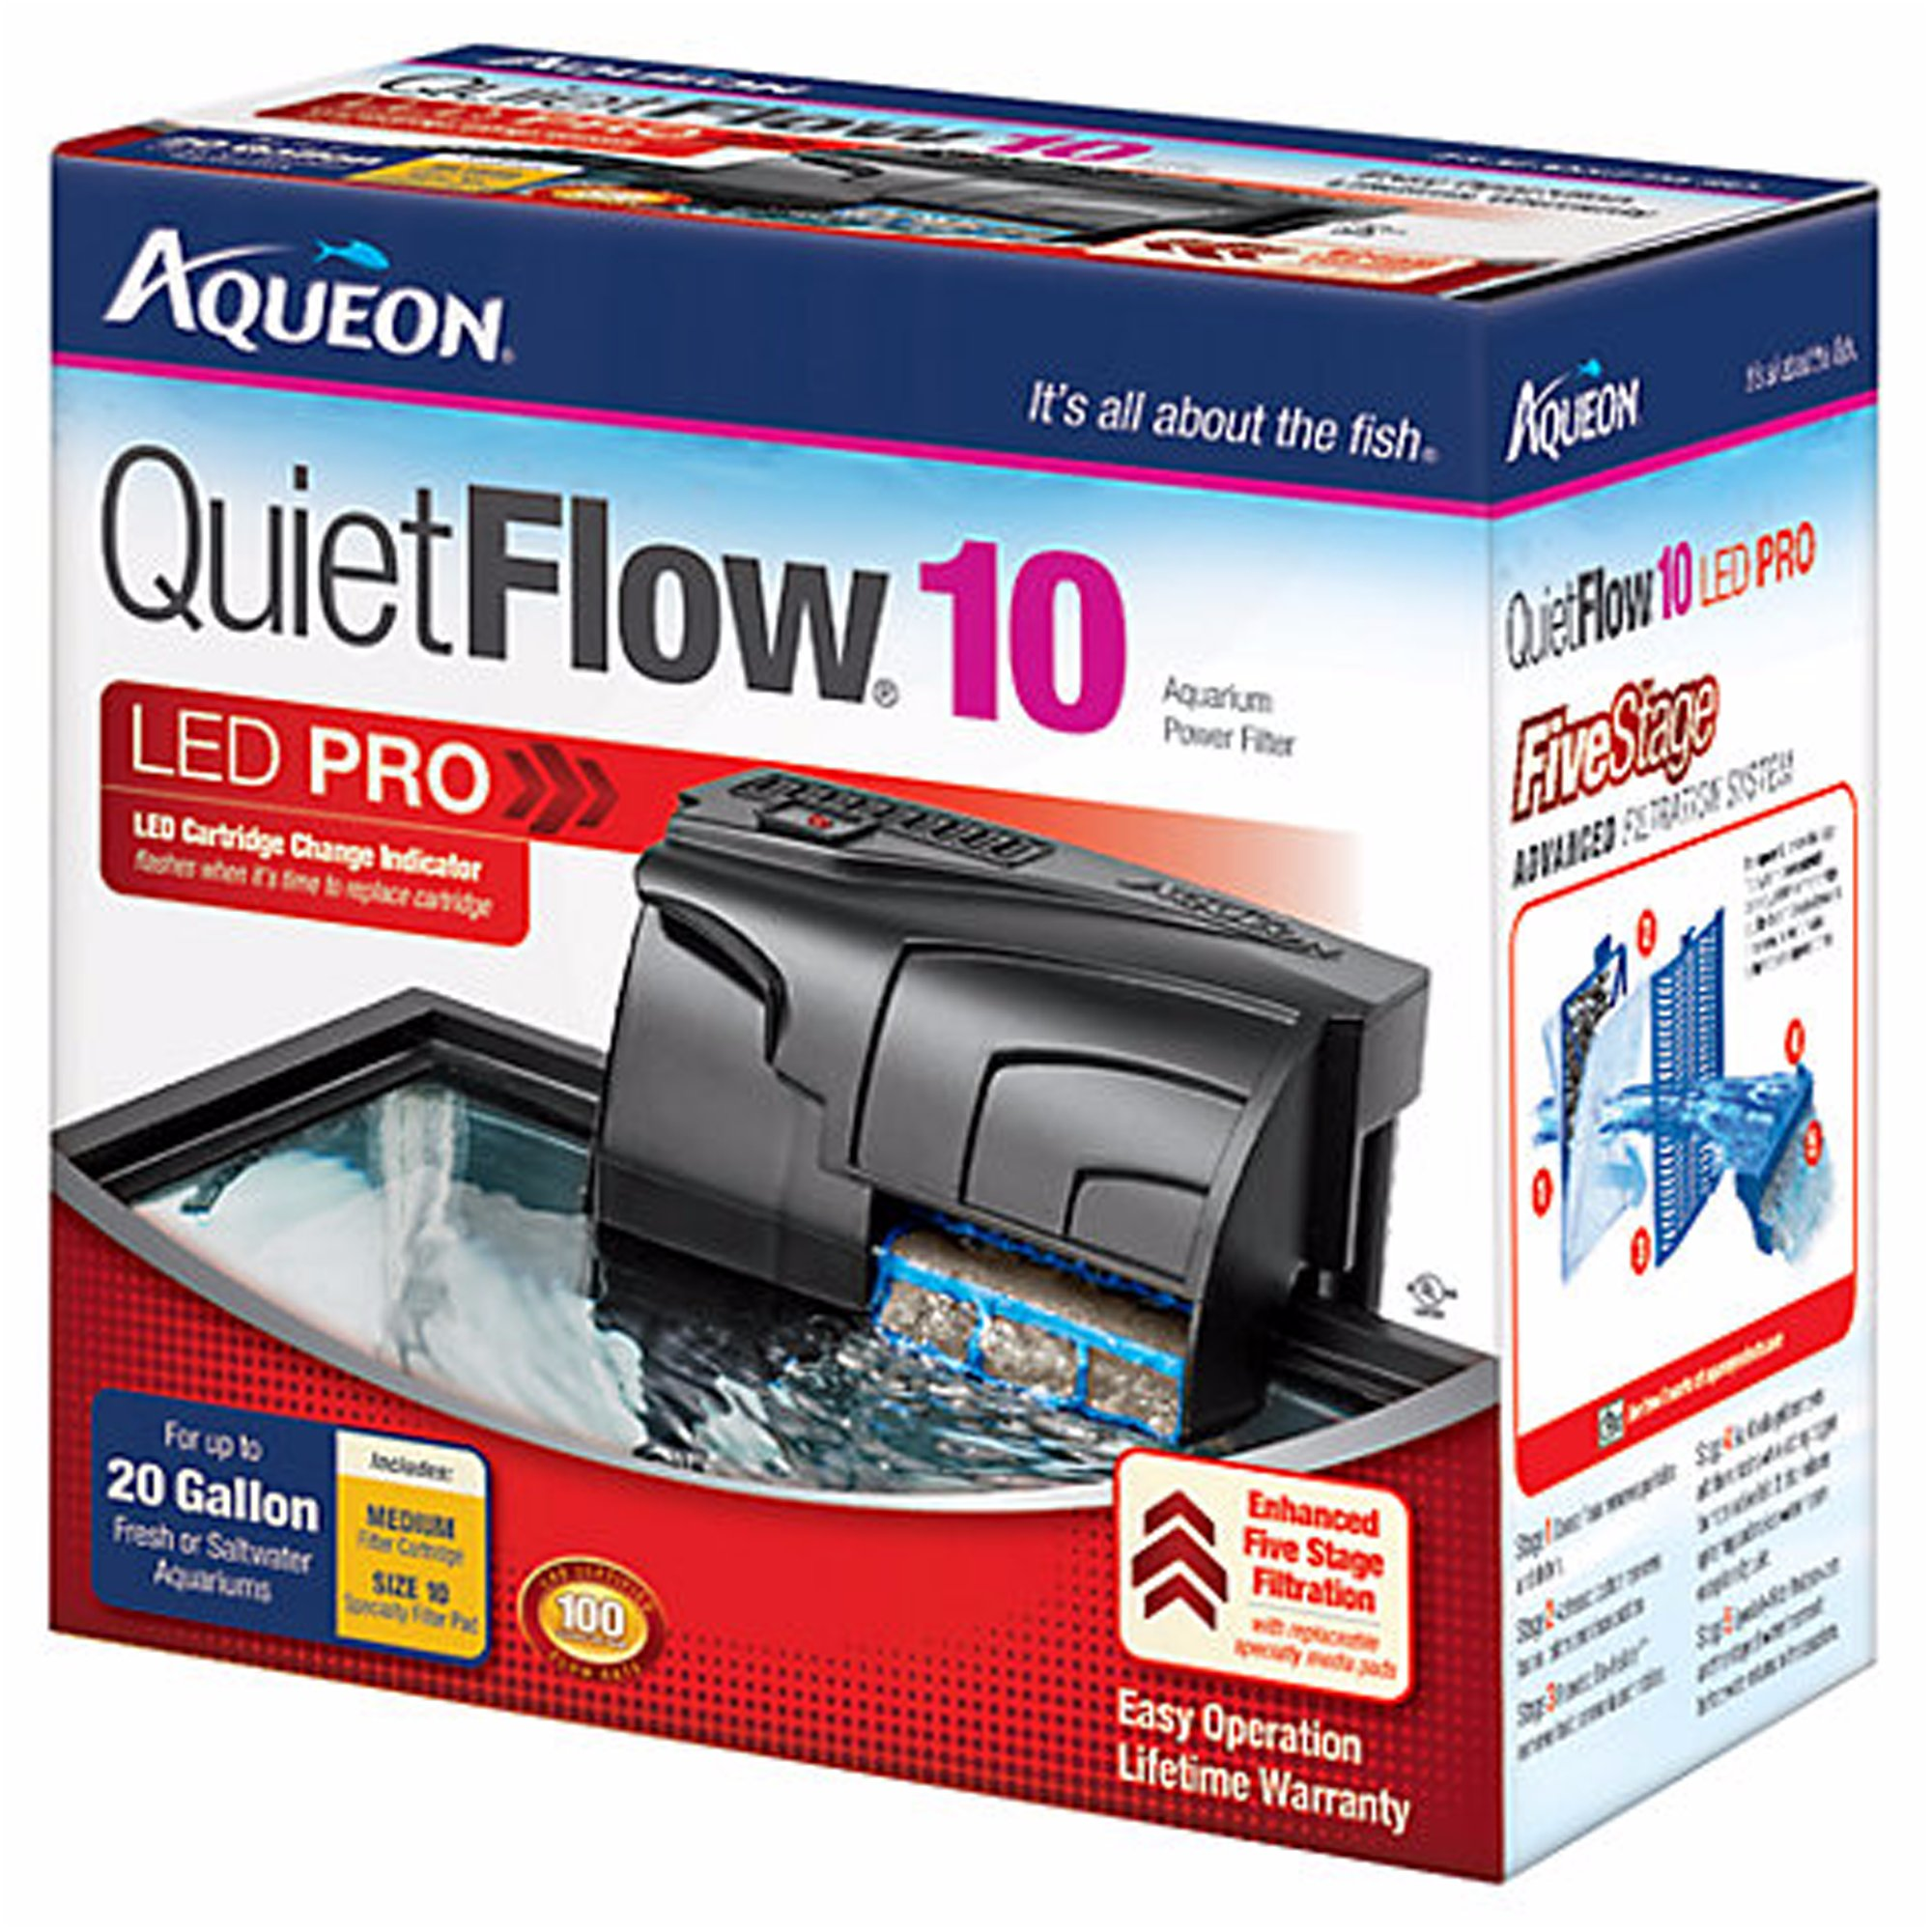 Aqueon quietflow 10 aquarium power filter petco for Quiet fish tank filter